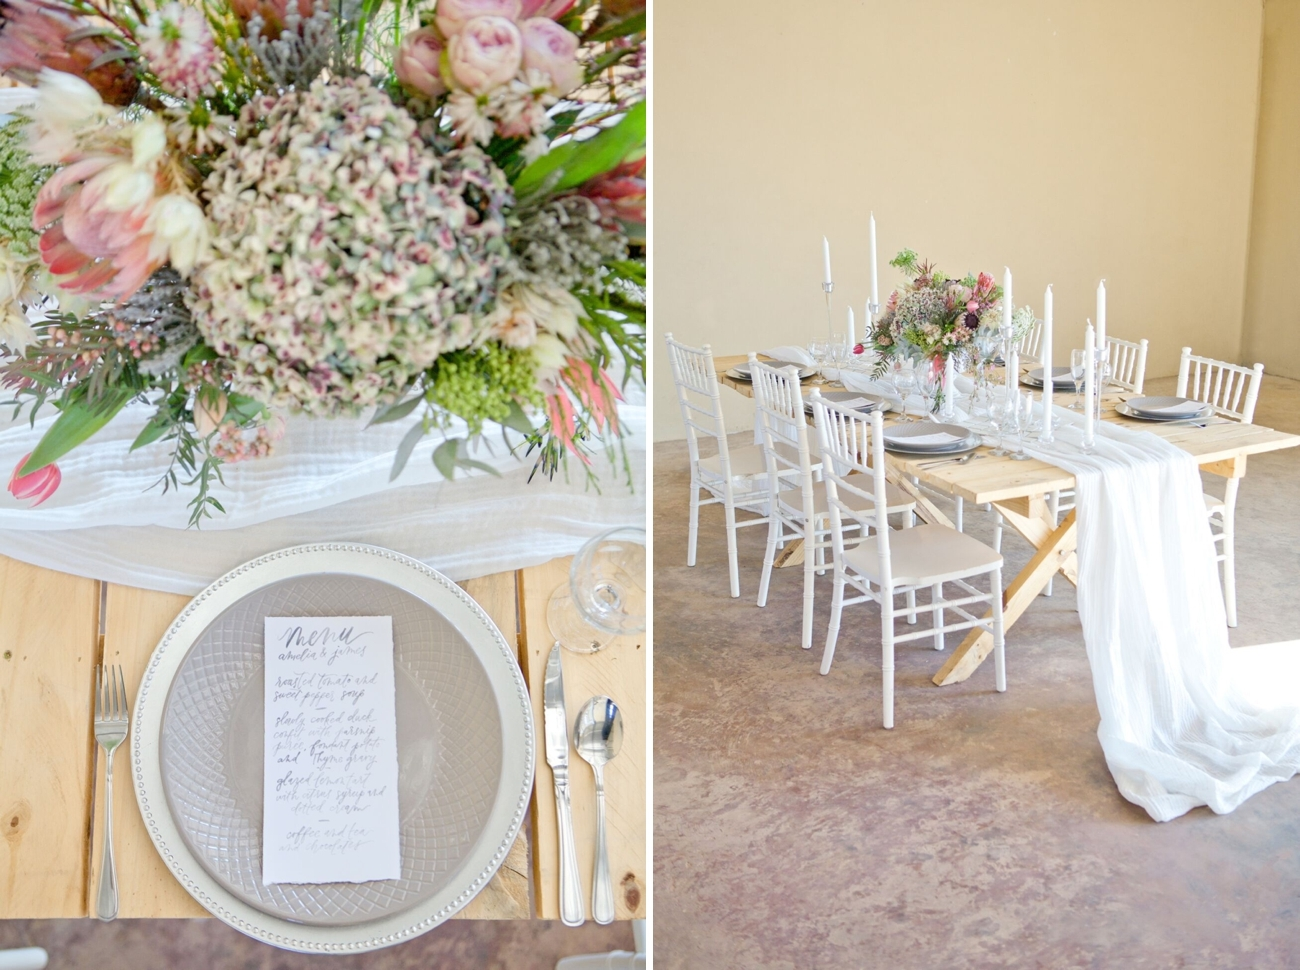 Romantic South African Protea Wedding Inspiration | Image: Corette Faux